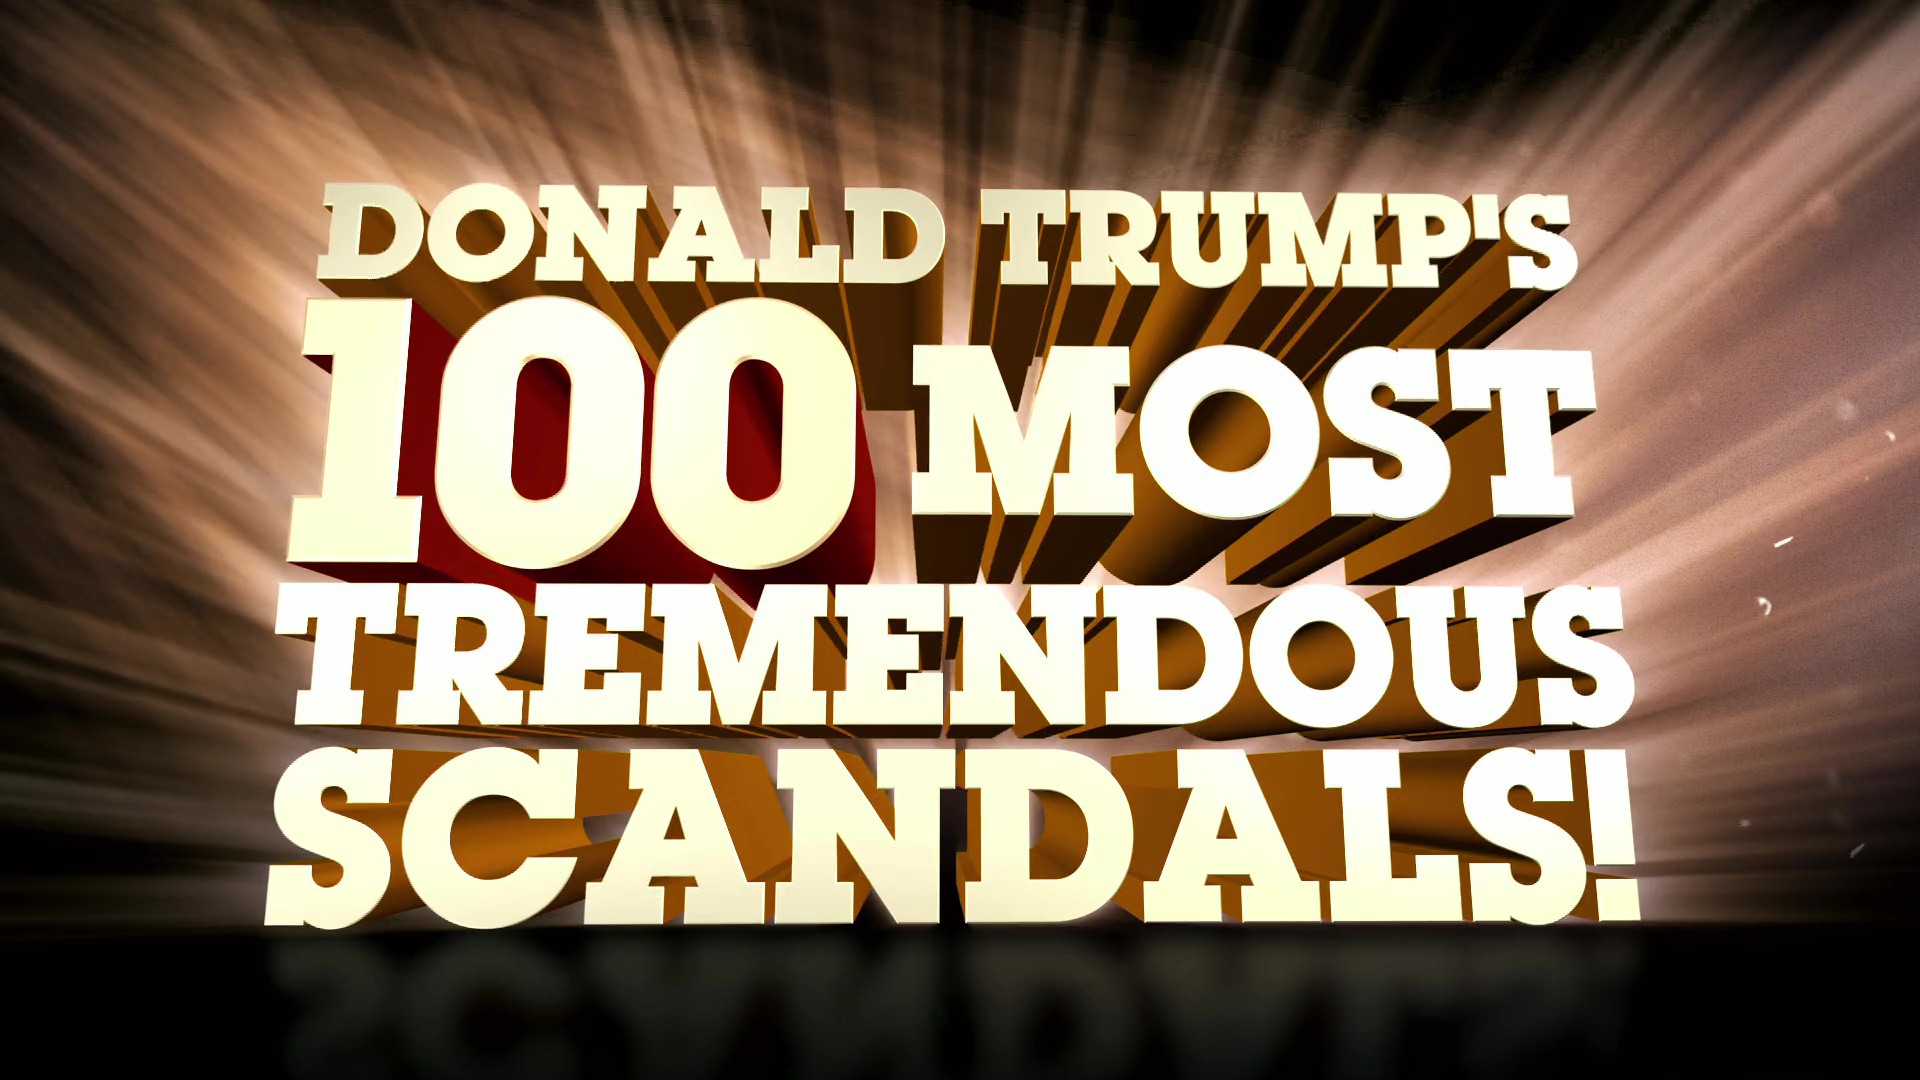 Donald Trump's 100 Most Tremendous Scandals